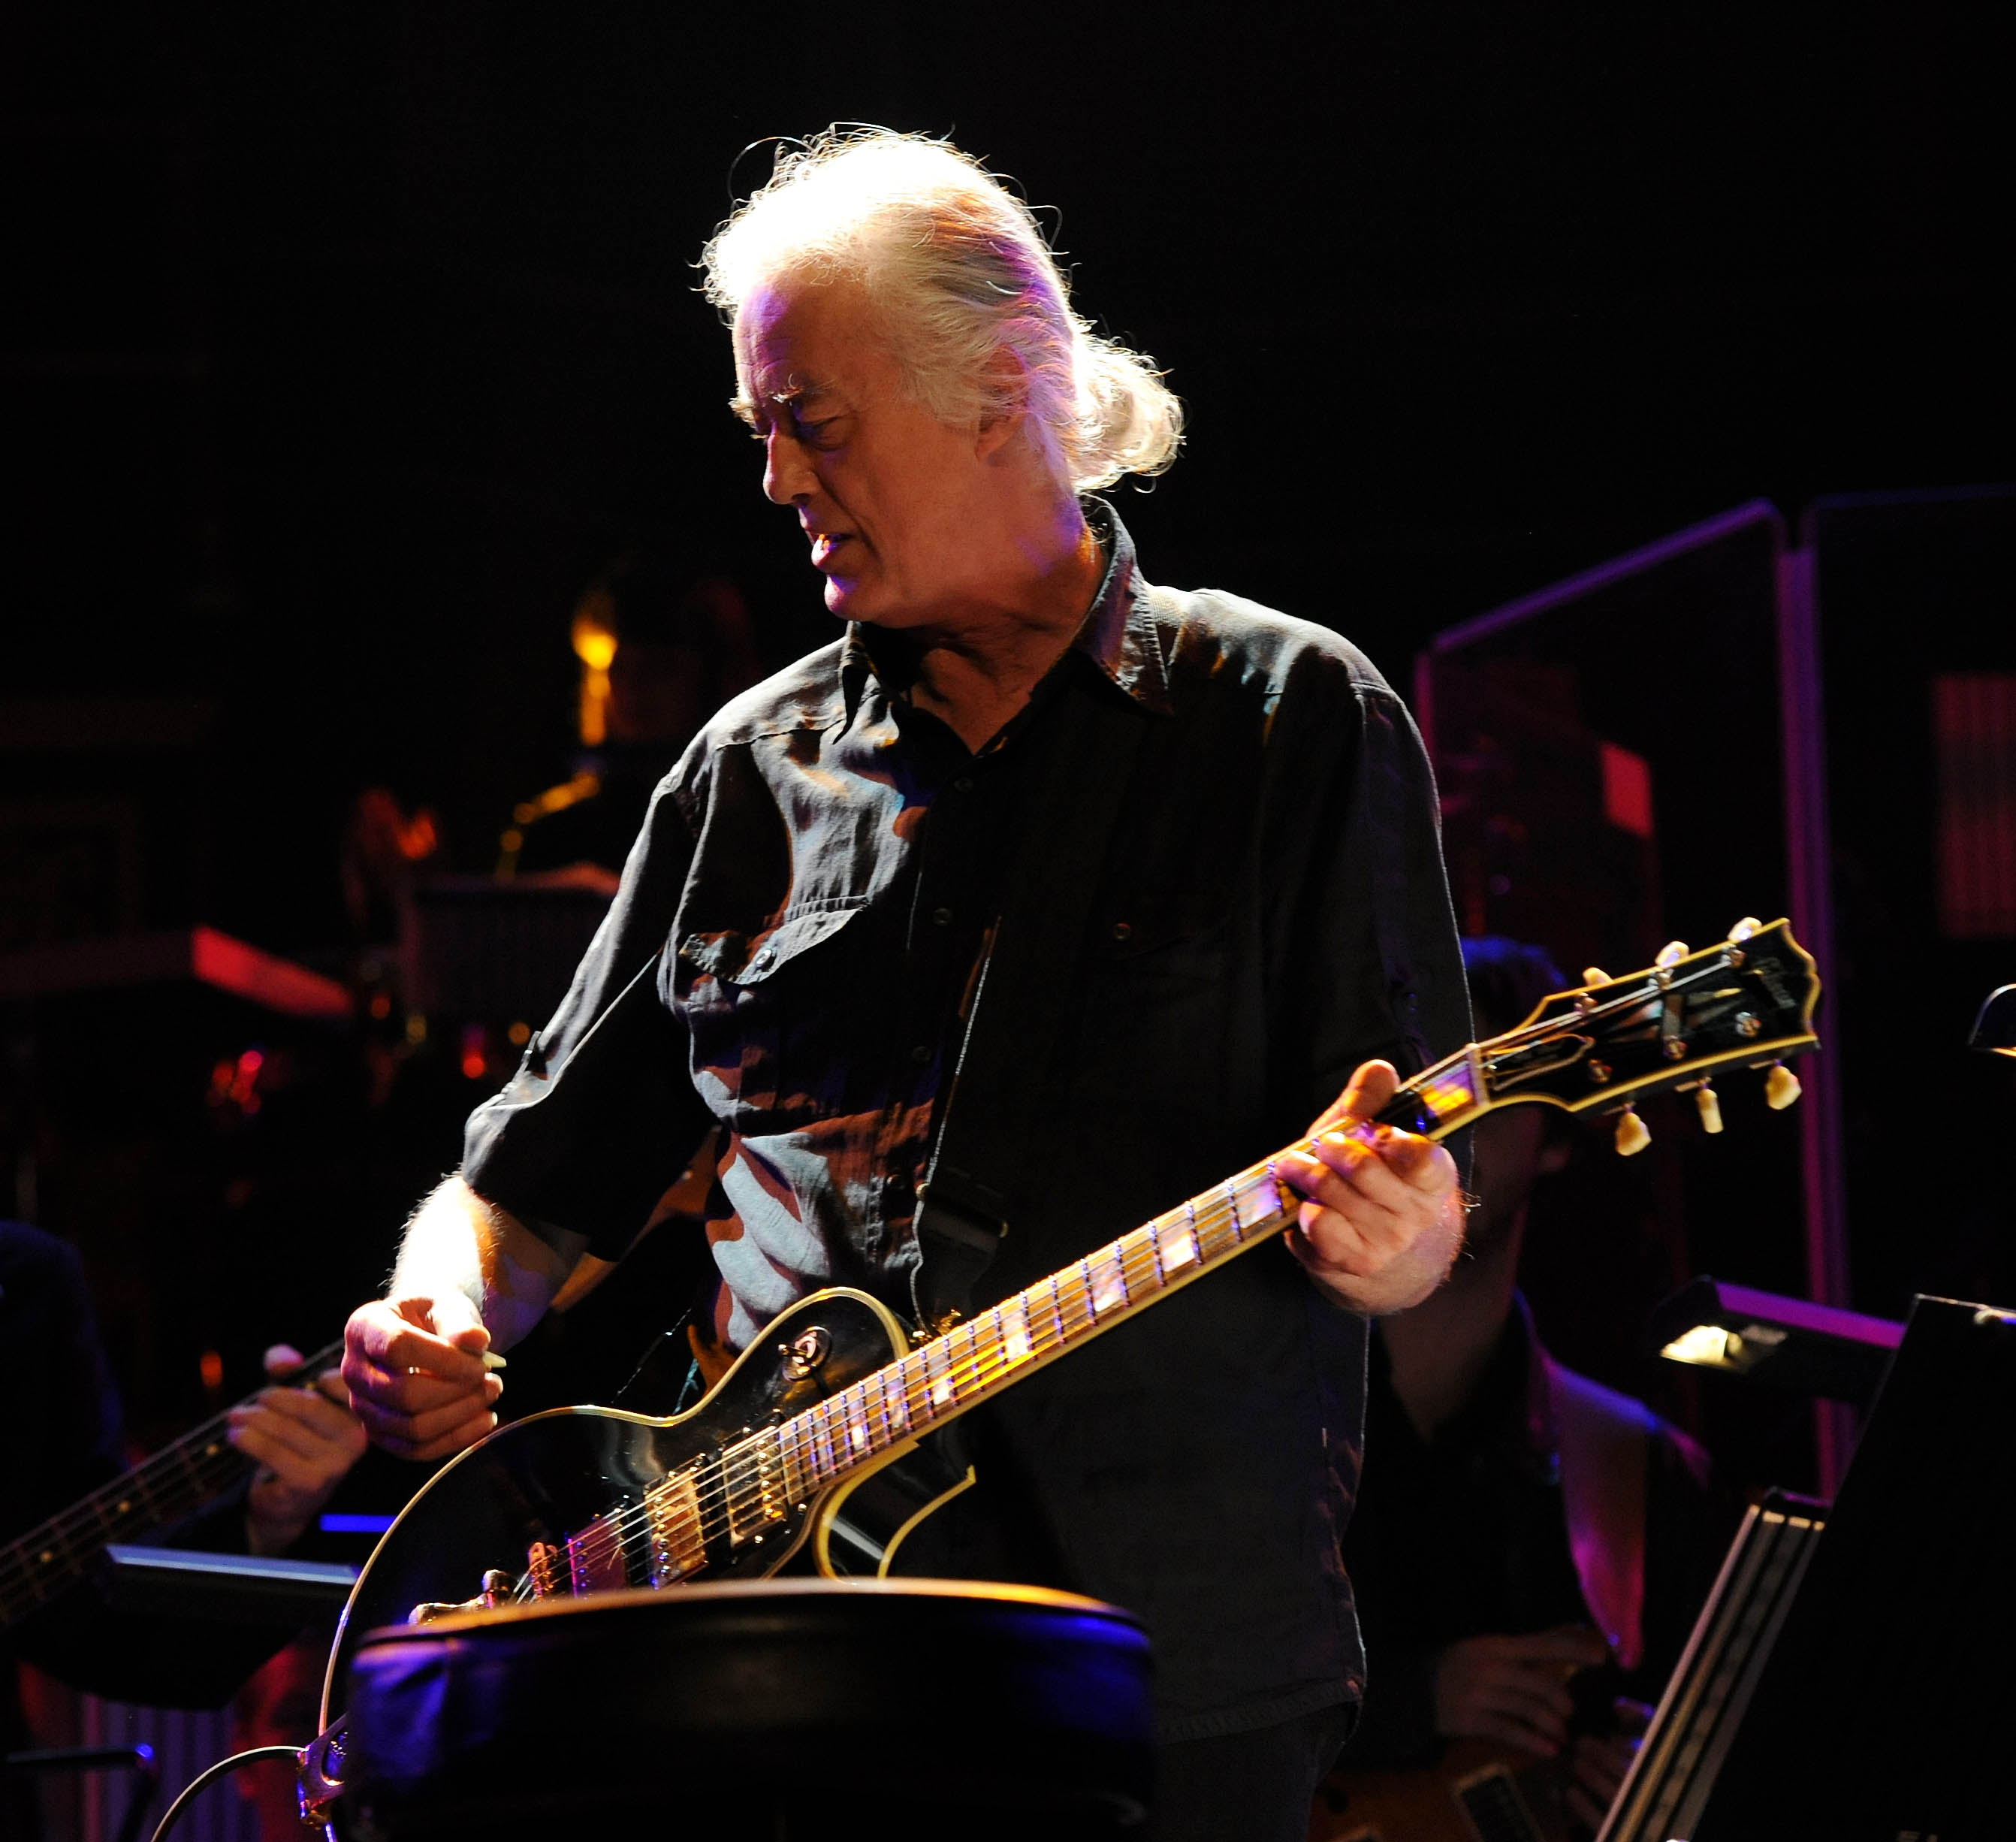 Jimmy Page By Jimmy Page : led zeppelin 39 s jimmy page laughs plays air guitar in court cbs news ~ Vivirlamusica.com Haus und Dekorationen